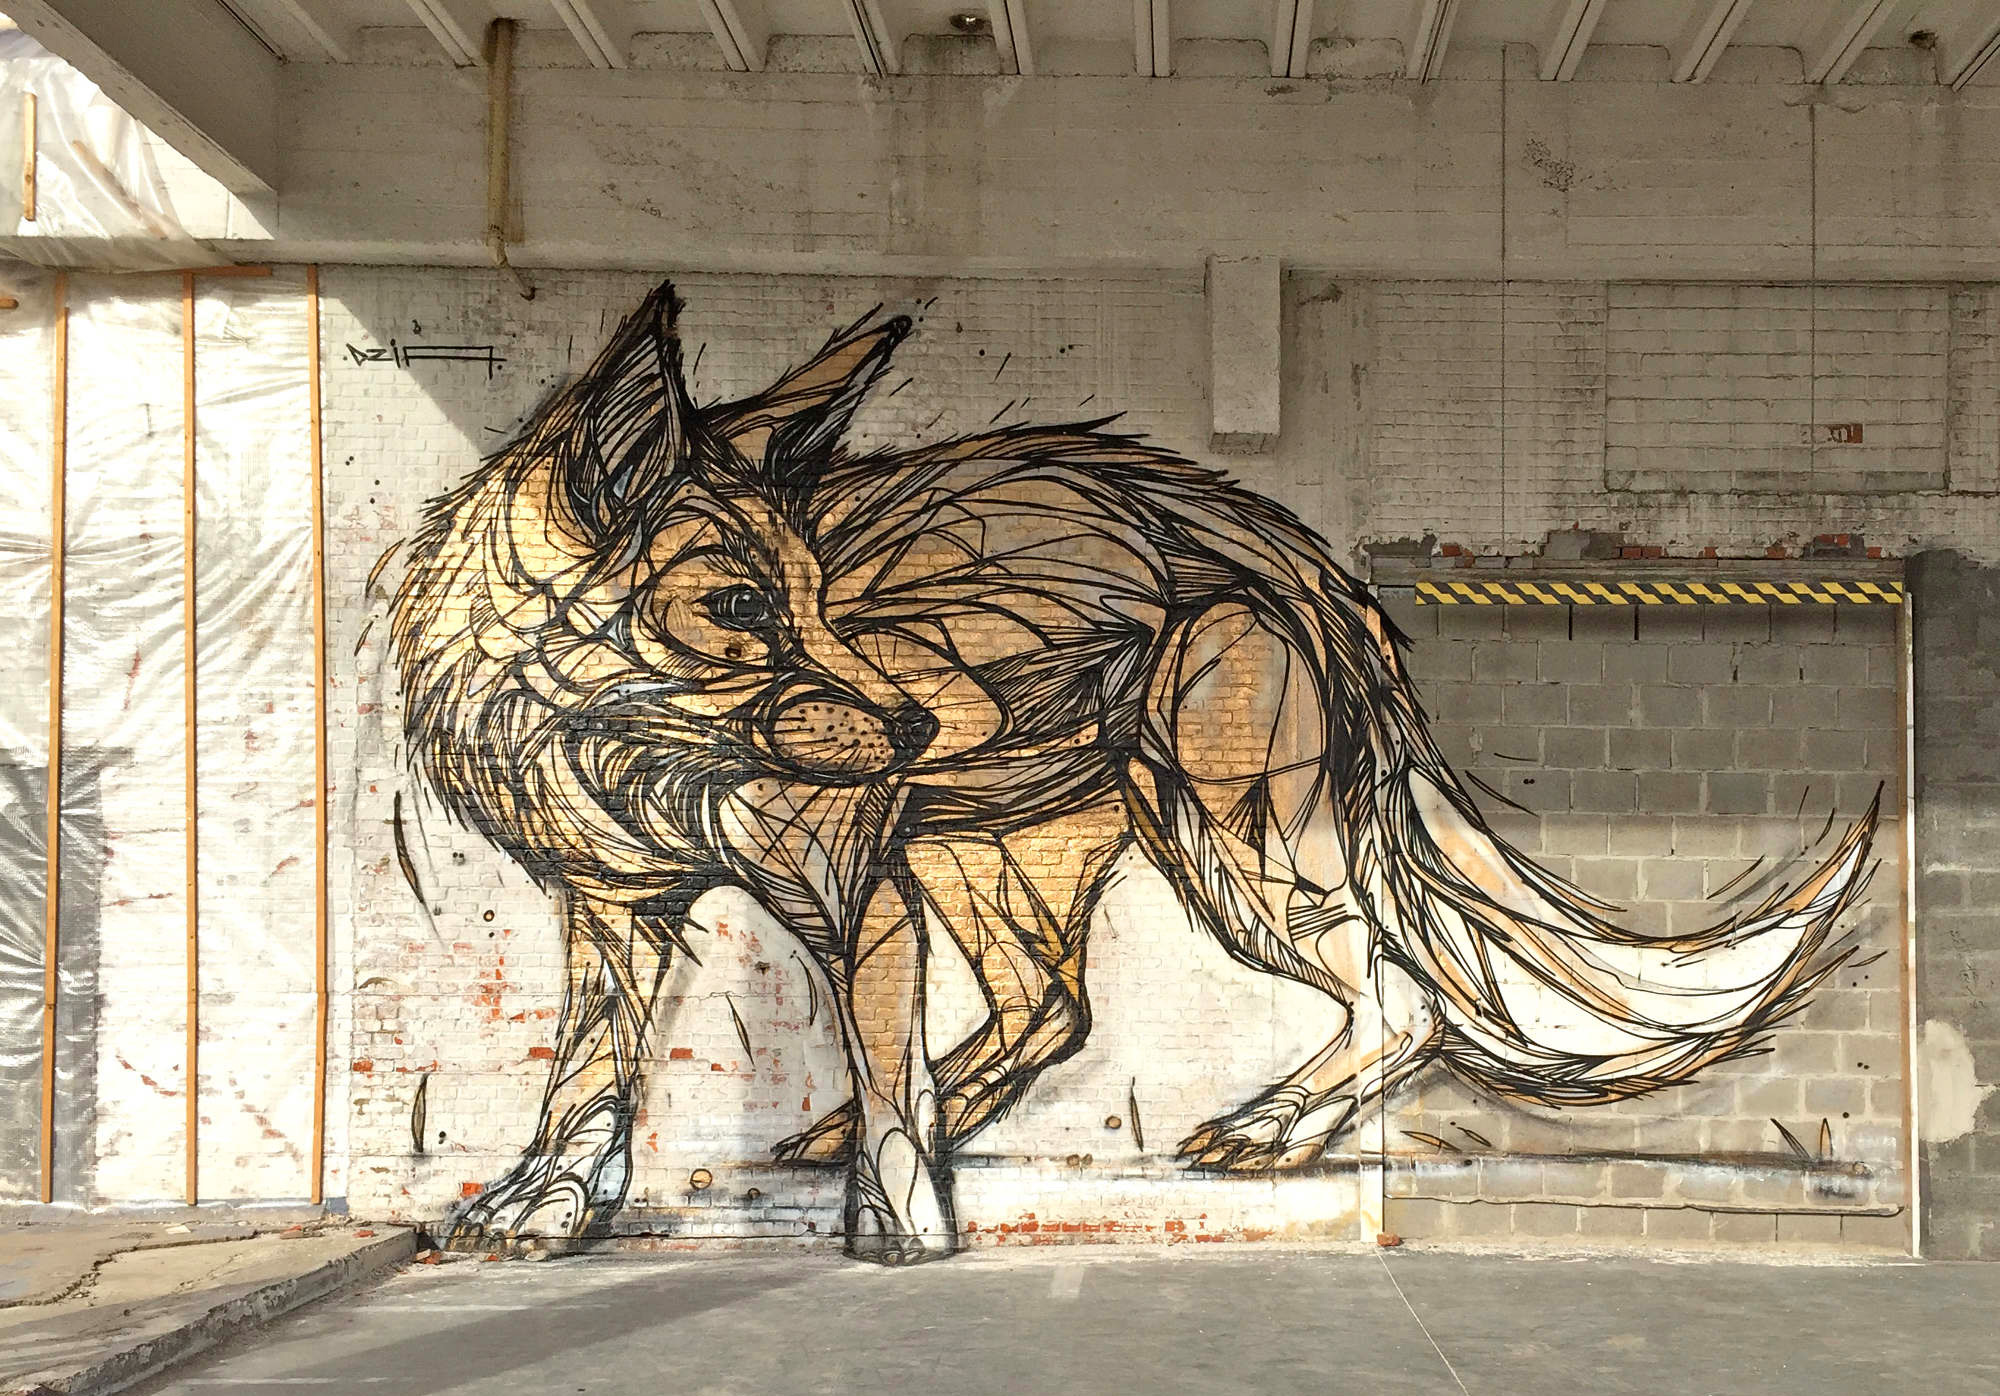 Graffiti of Animals and Insects on the Streets of Antwerp by 'Dzia' (8)